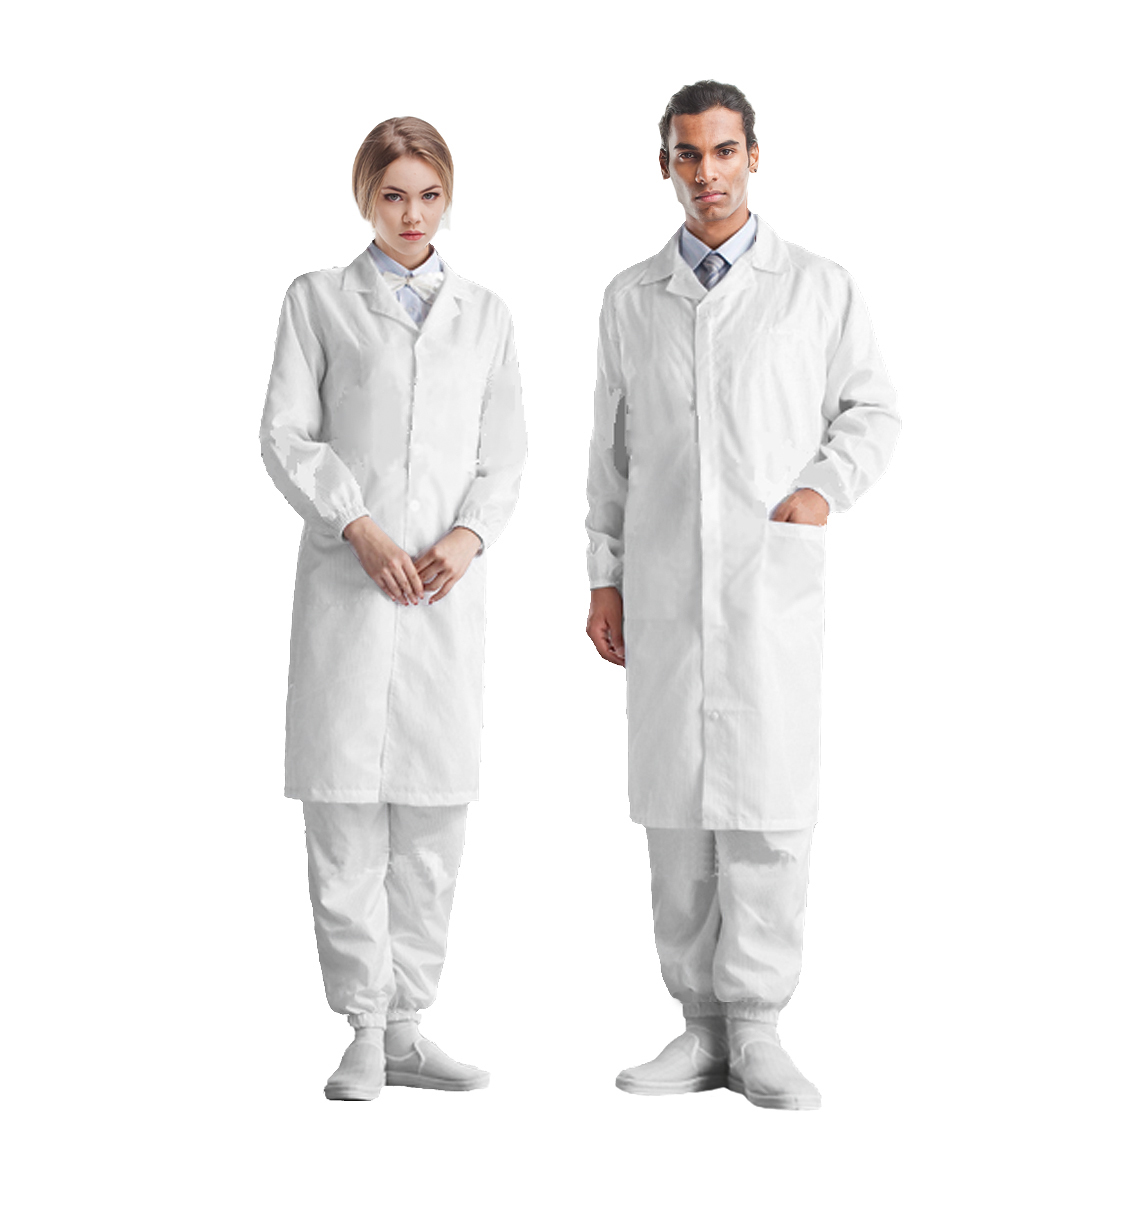 CLEANROOM GARMENTS AND ACCESSORIES